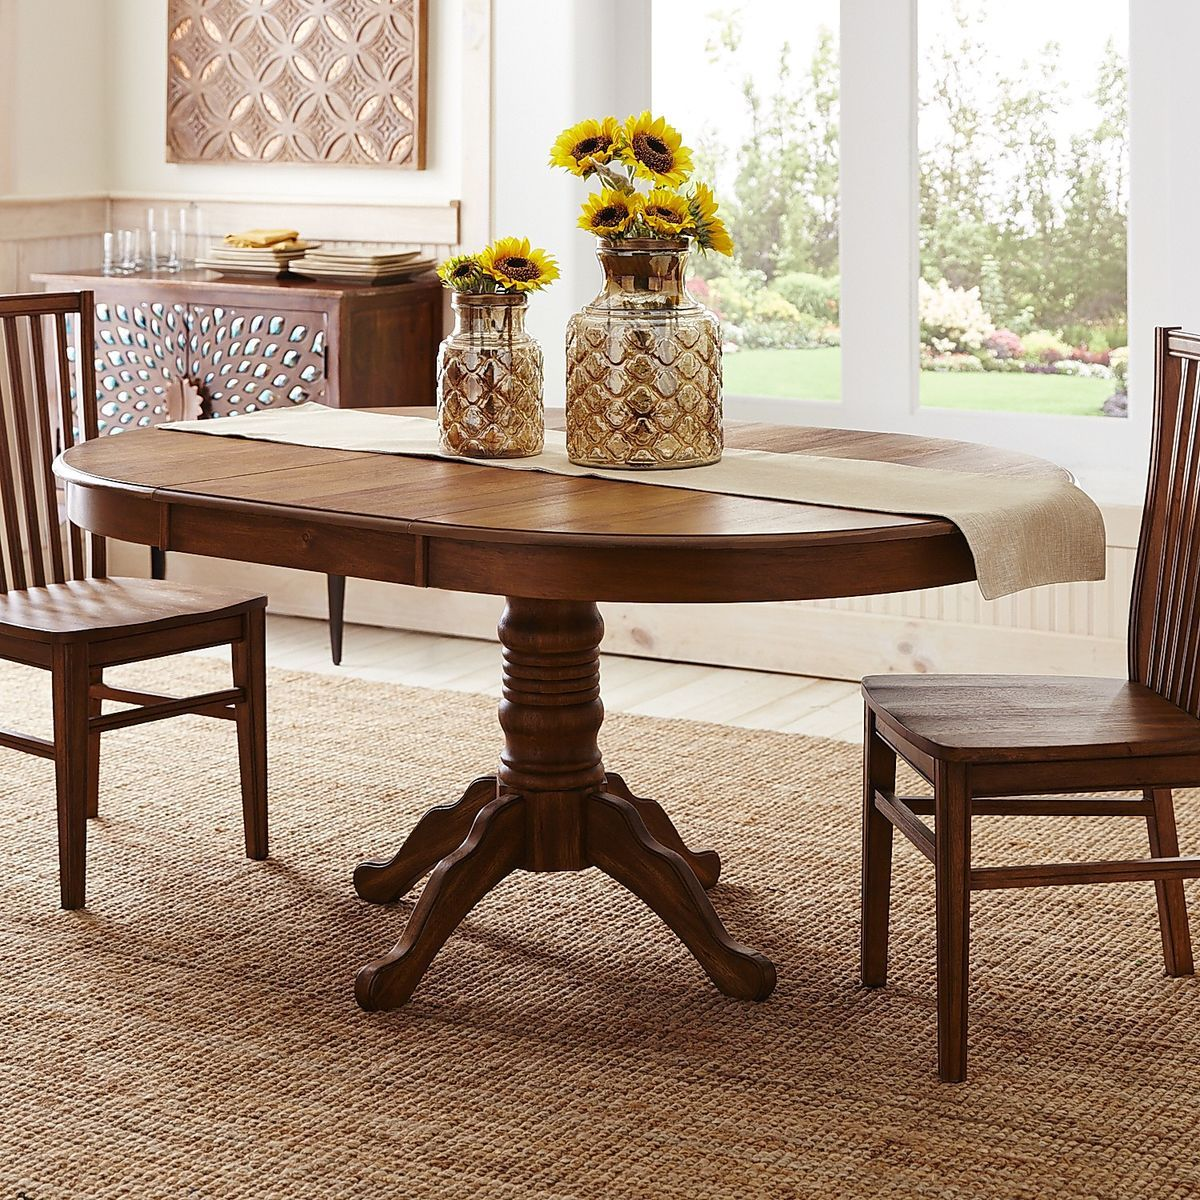 Bradding 84 Shadow Gray Dining Table Pier 1 Imports Grey Dining Tables Dining Room Design Dining Room Remodel